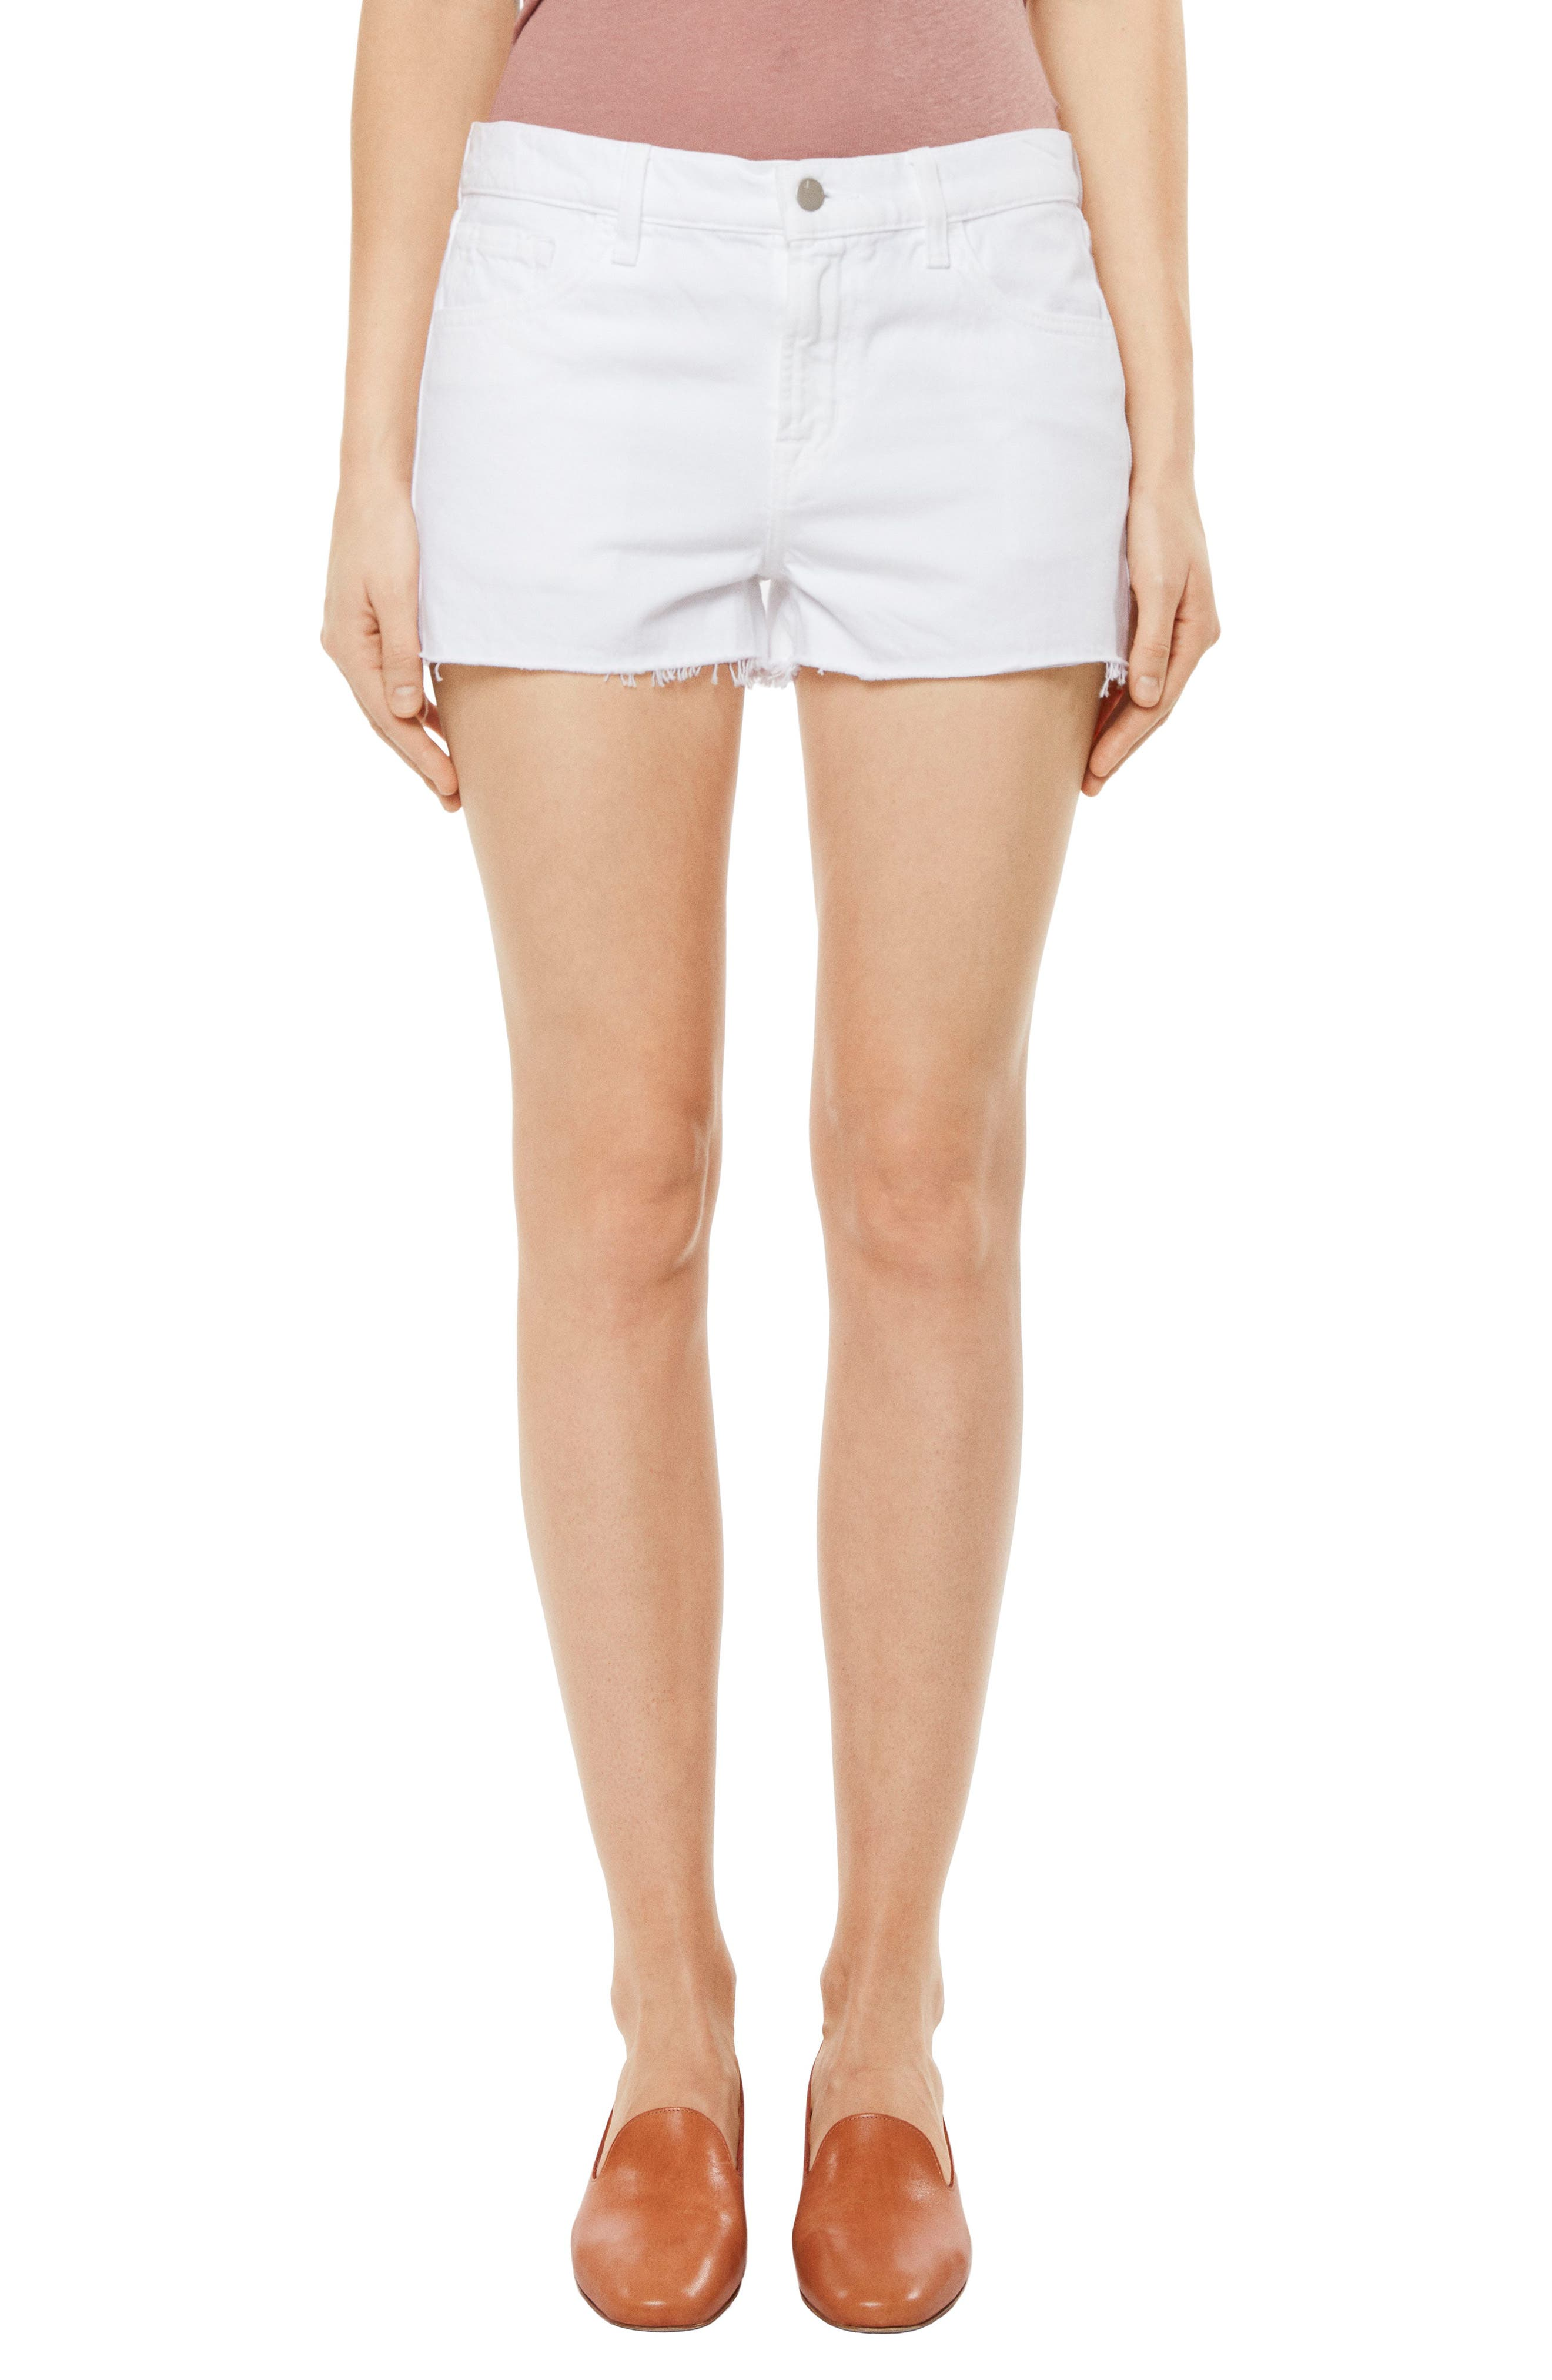 J BRAND Raw Hem Denim Shorts, Main, color, 109